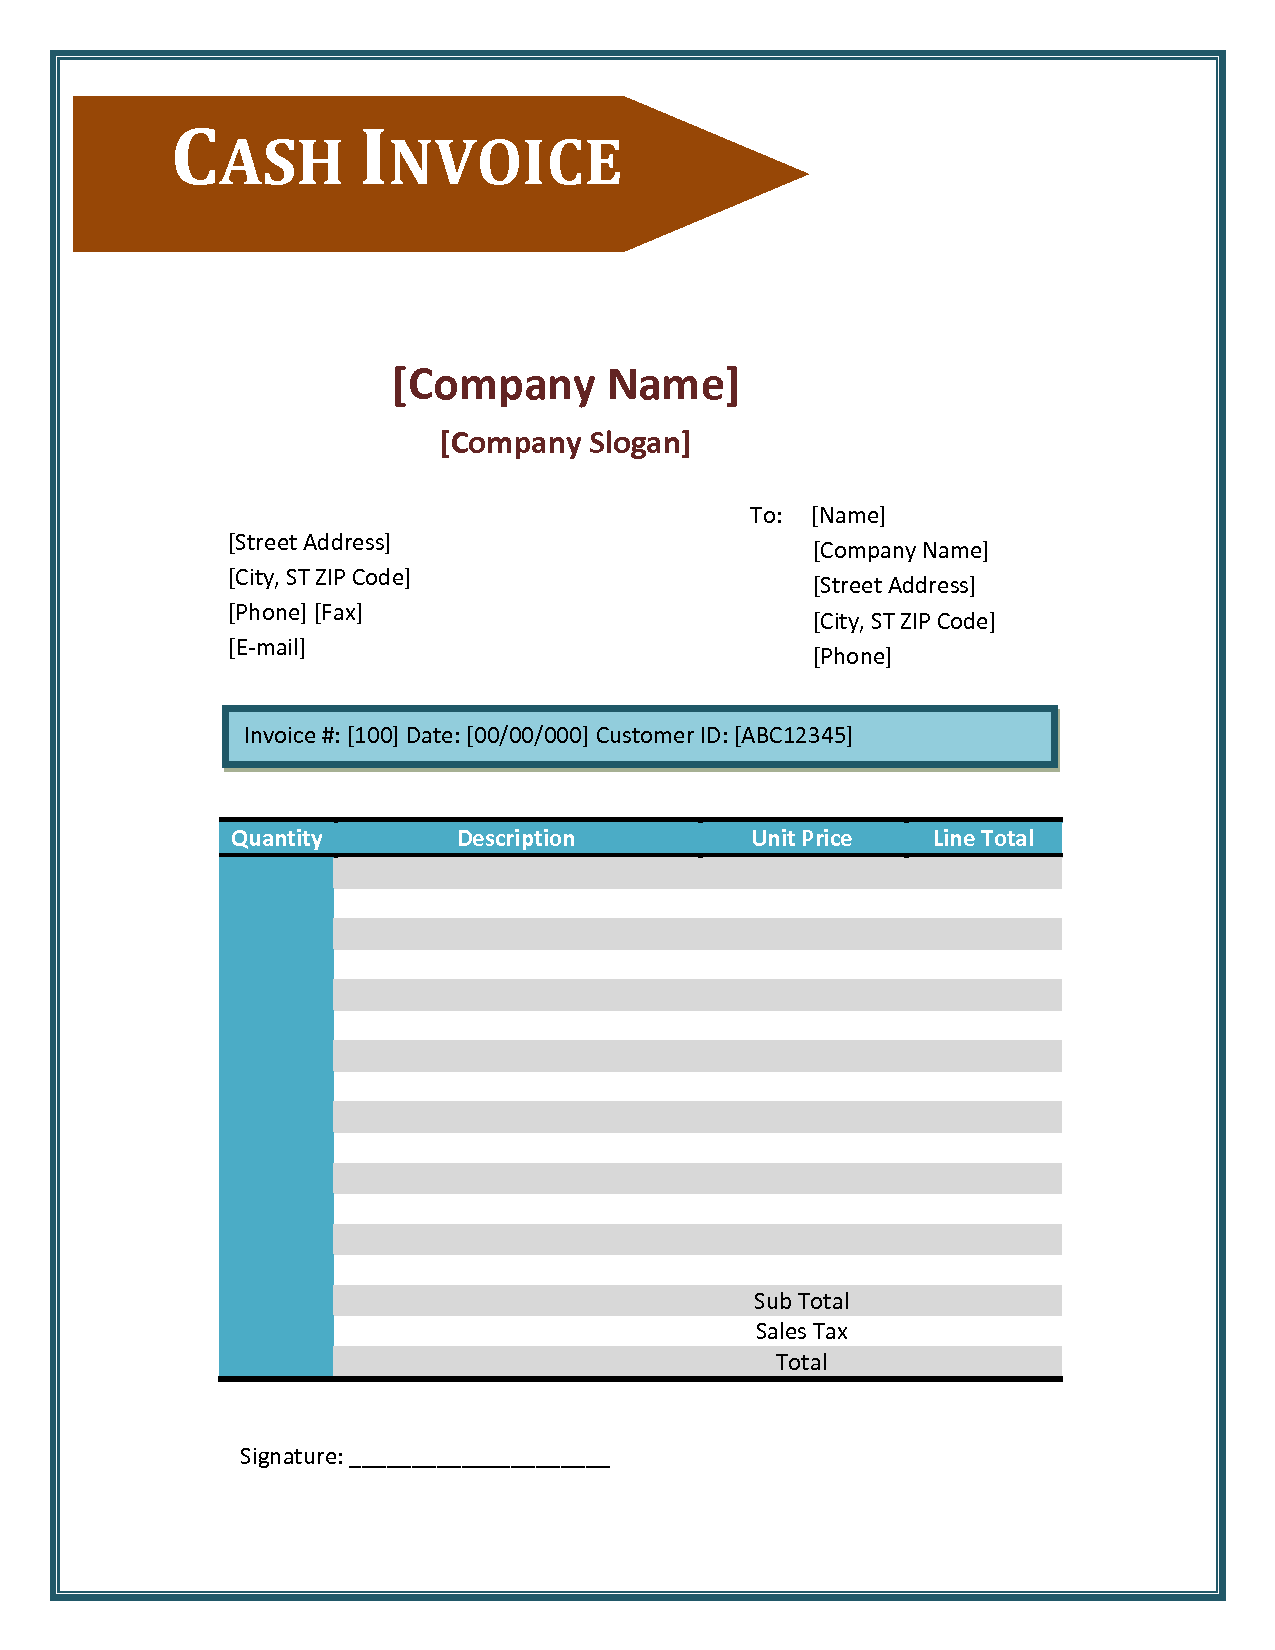 Cash Invoice Template Excel Invoice Example